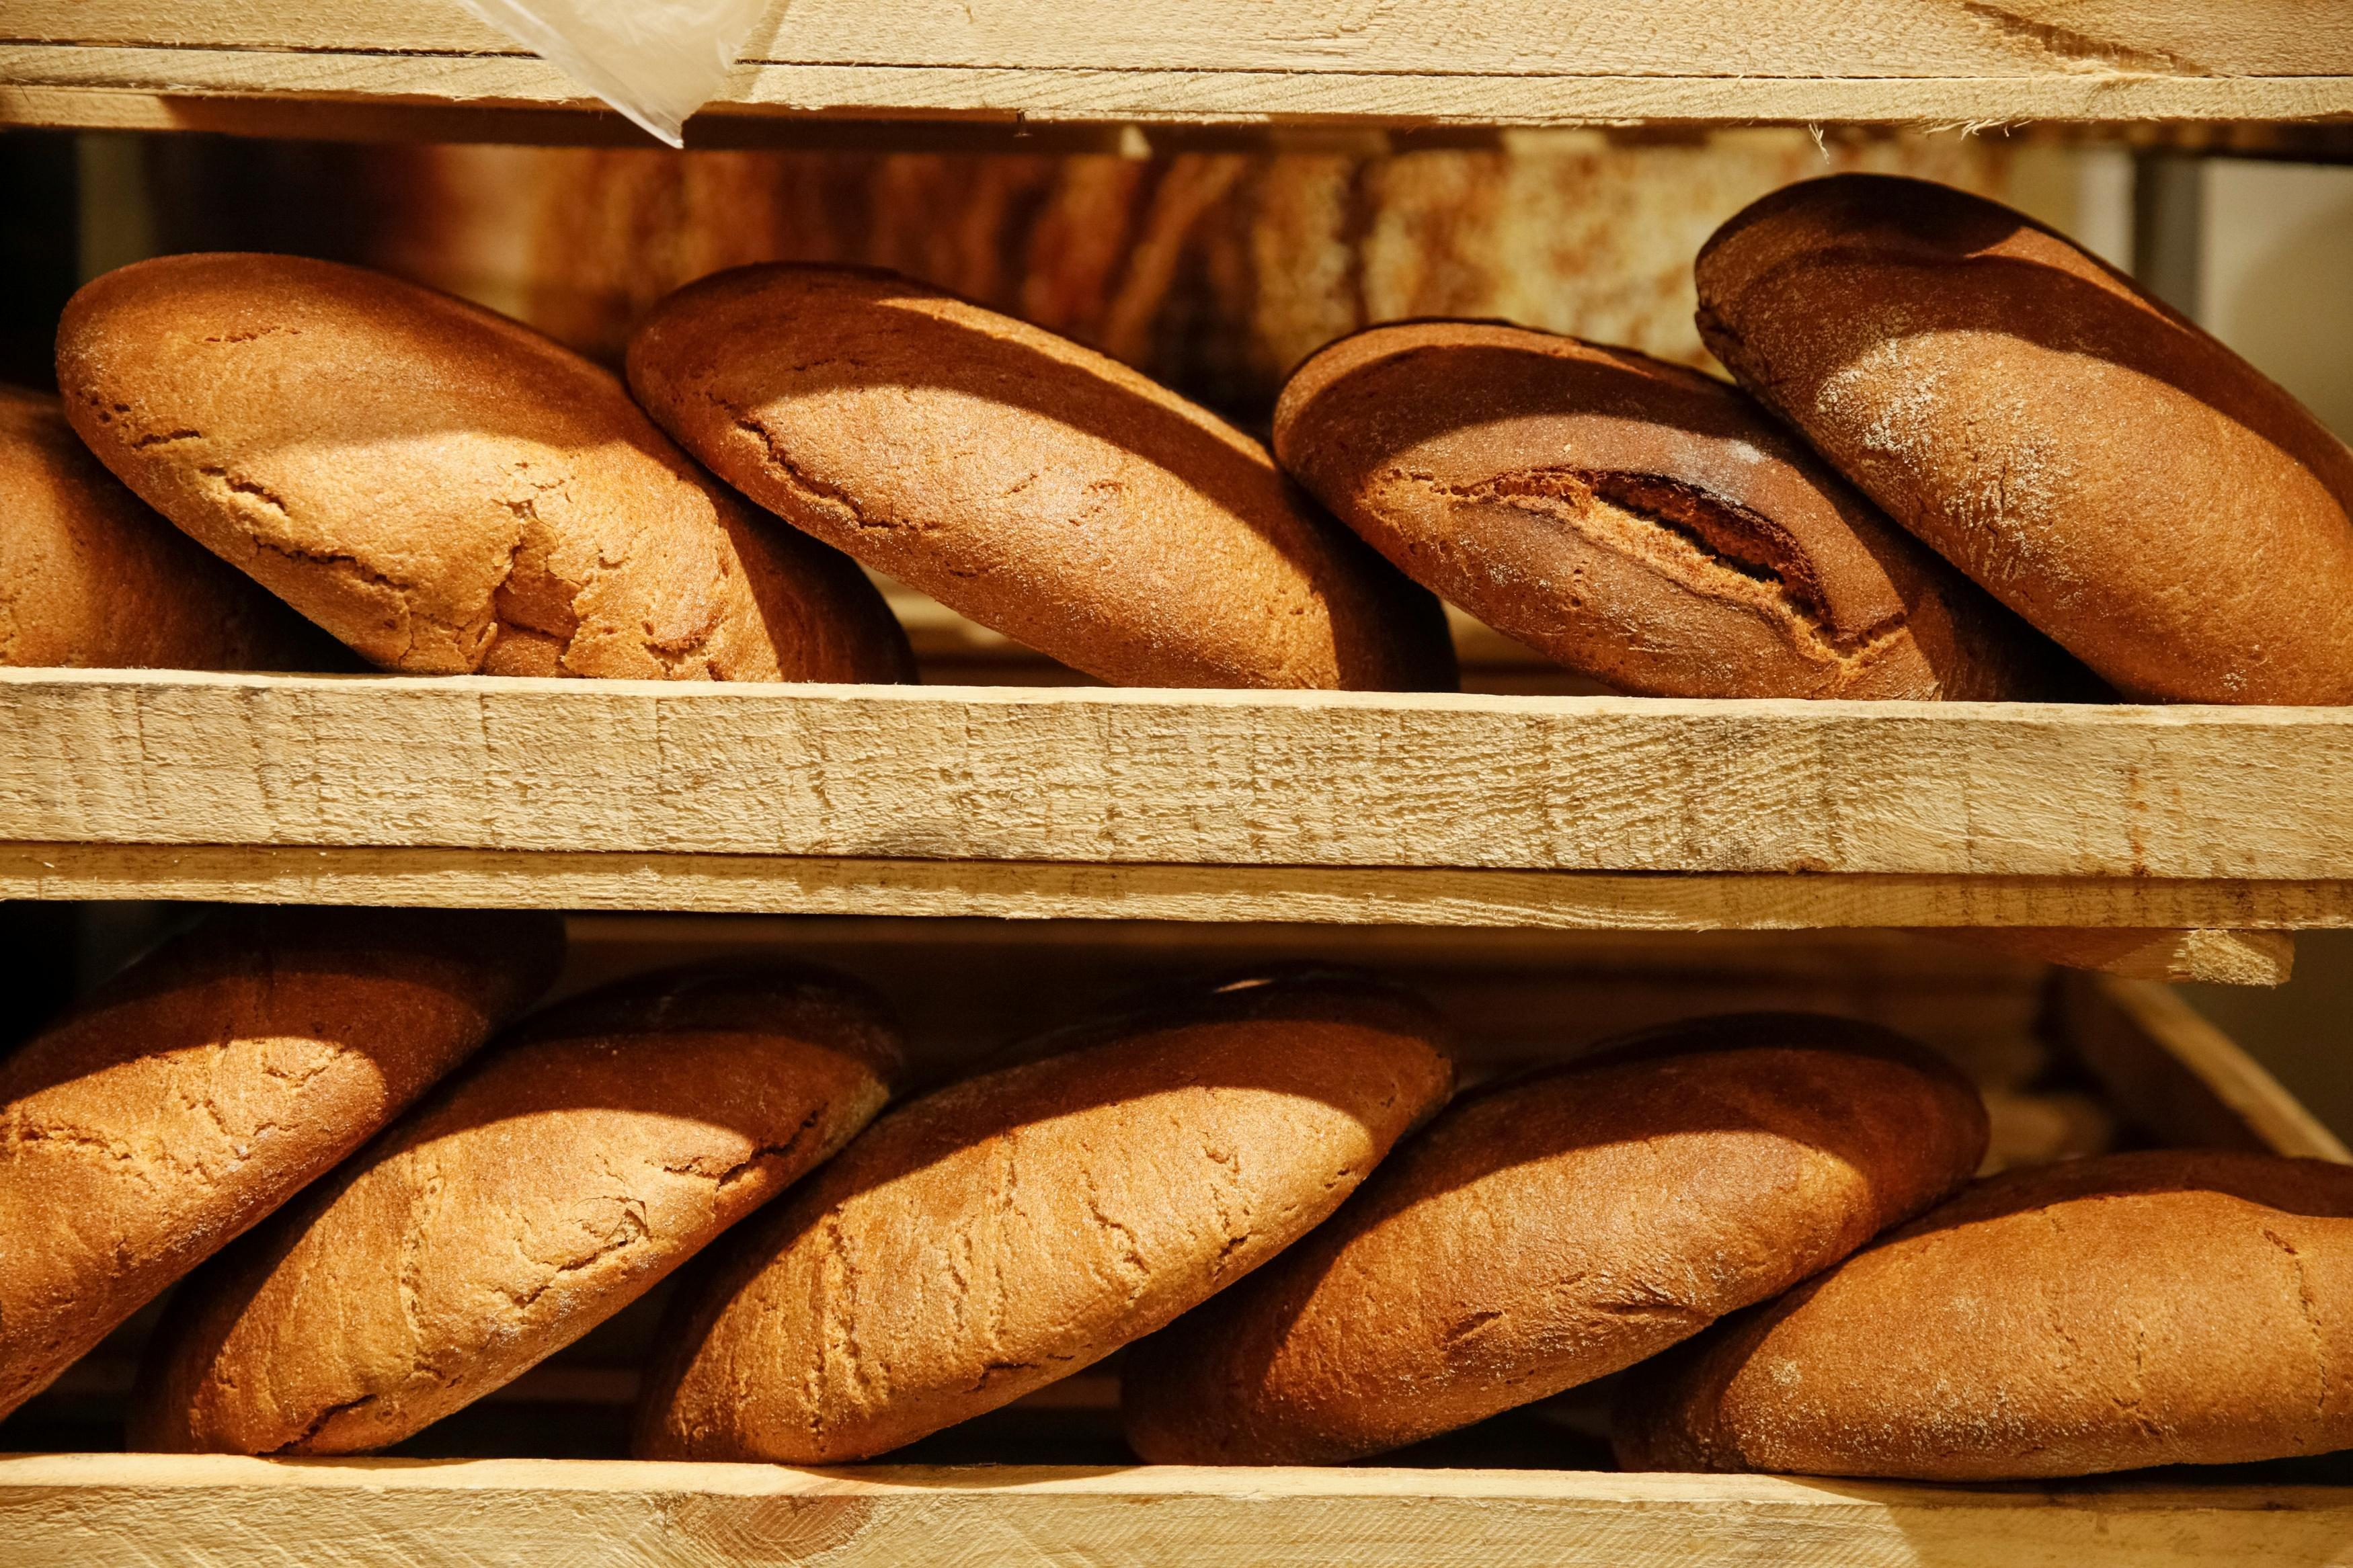 Gluten-free Diets Actually Increase Risks Of Type 2 Diabetes